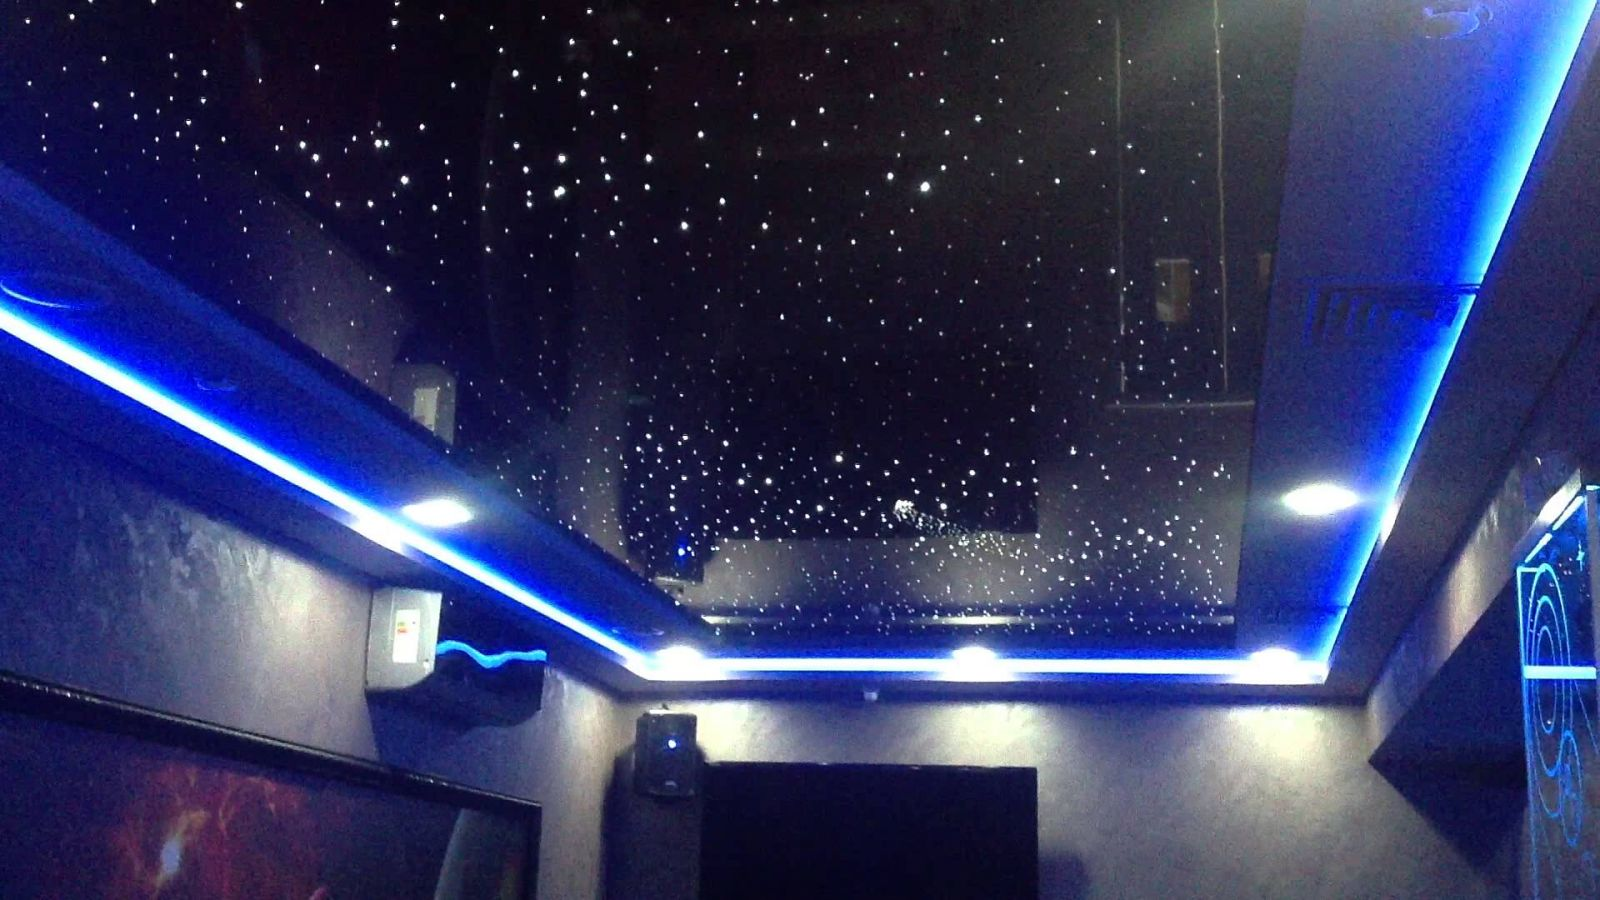 Night Light With Stars On Ceiling Starry Sky Ceiling Night Sky Ceiling Lights Stars Ceiling Dubai